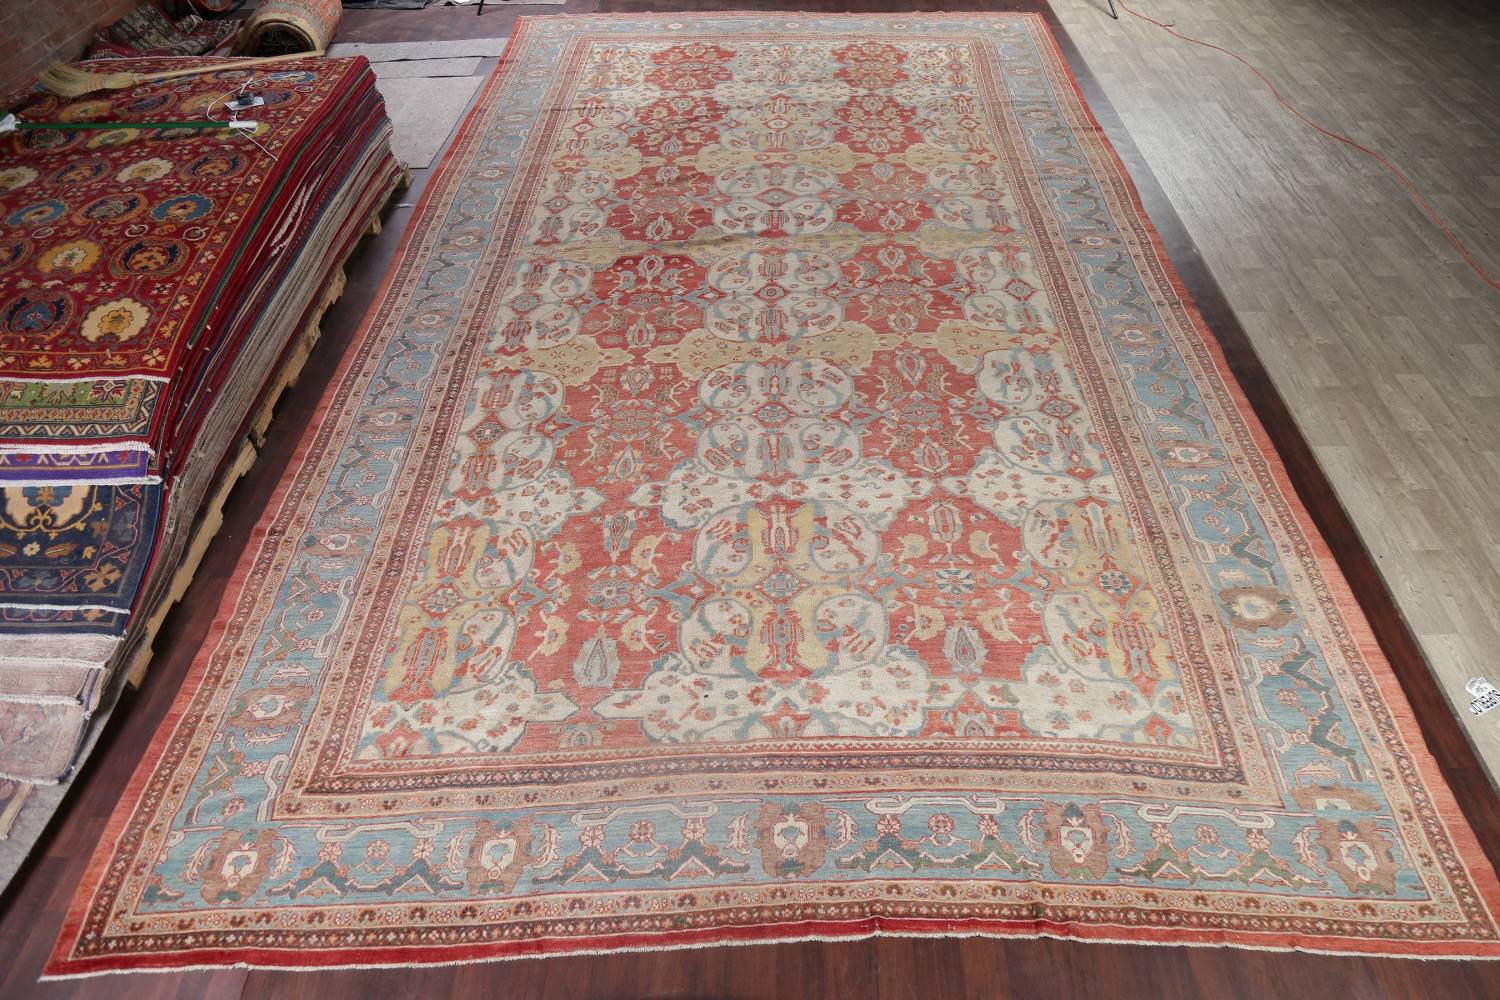 Palace Size Pre-1900 Antique Sultanabad Persian Rug 14x24 image 2